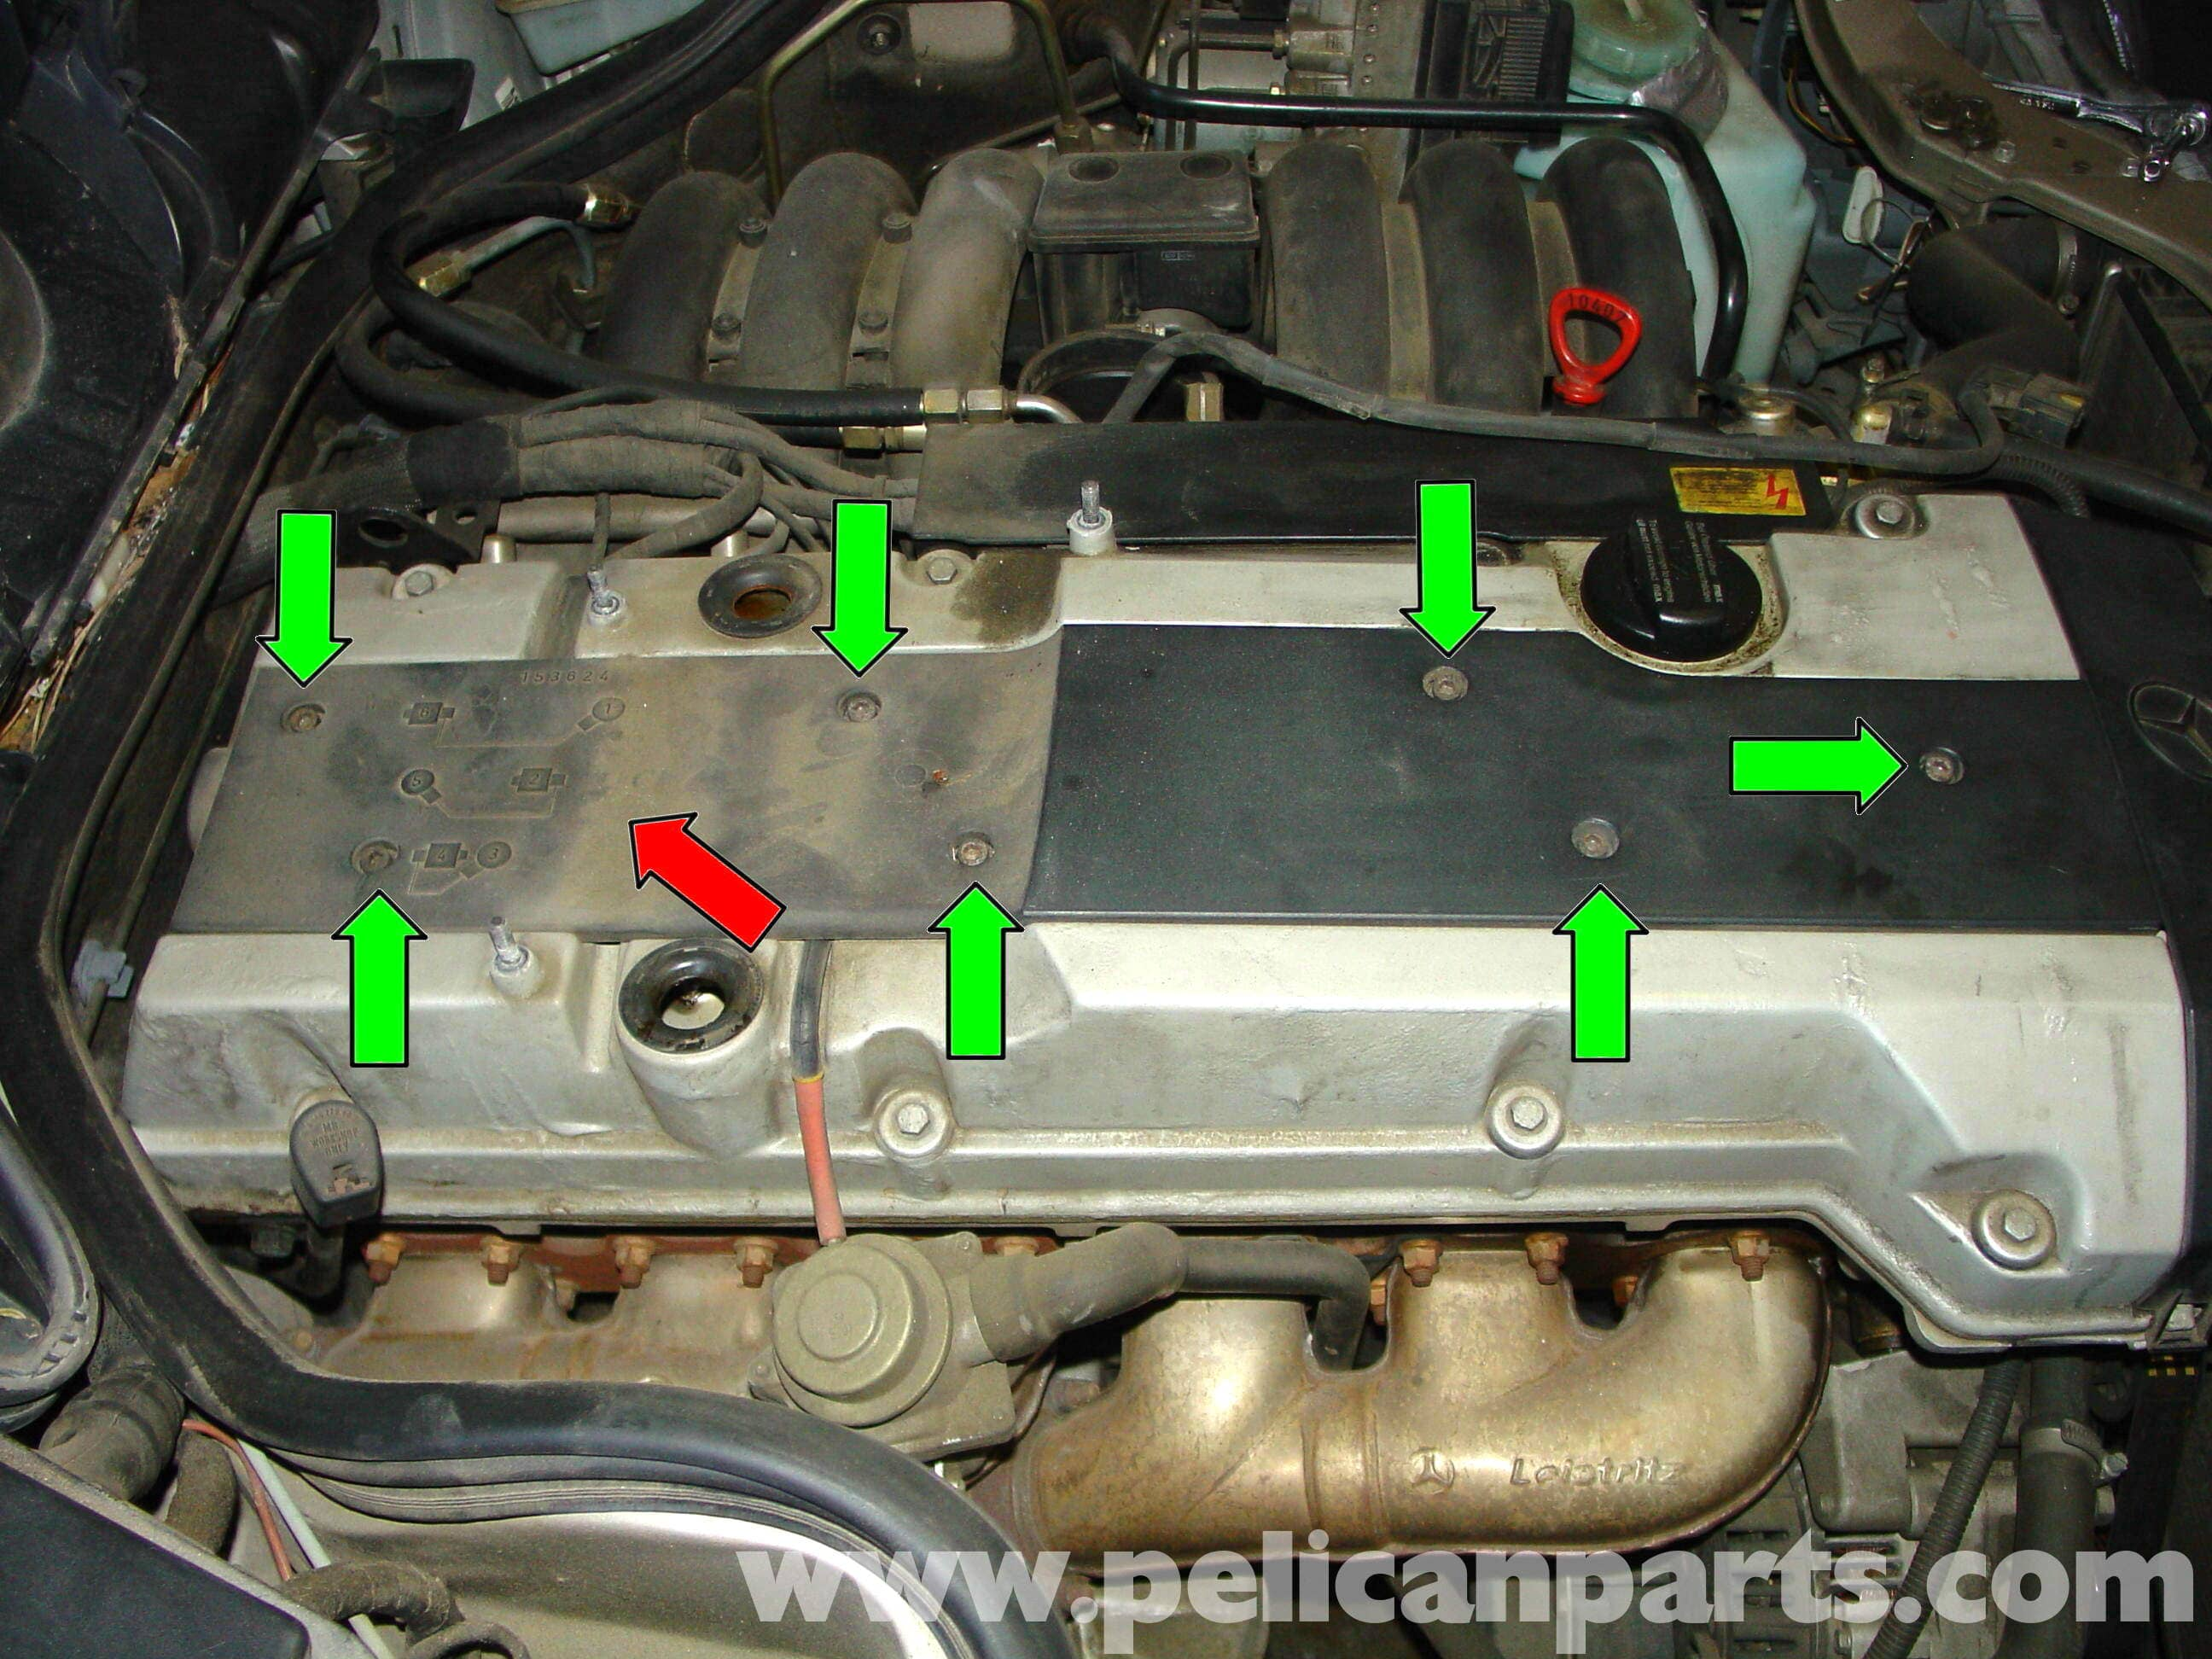 chilton 1996 mercedes e320 engine diagram wiring diagram detailed 1999 Volvo S70 Engine Diagram wrg 6760] 1996 mercedes e320 repair manual 2019 ebook library mercedes benz e320 engine diagram chilton 1996 mercedes e320 engine diagram